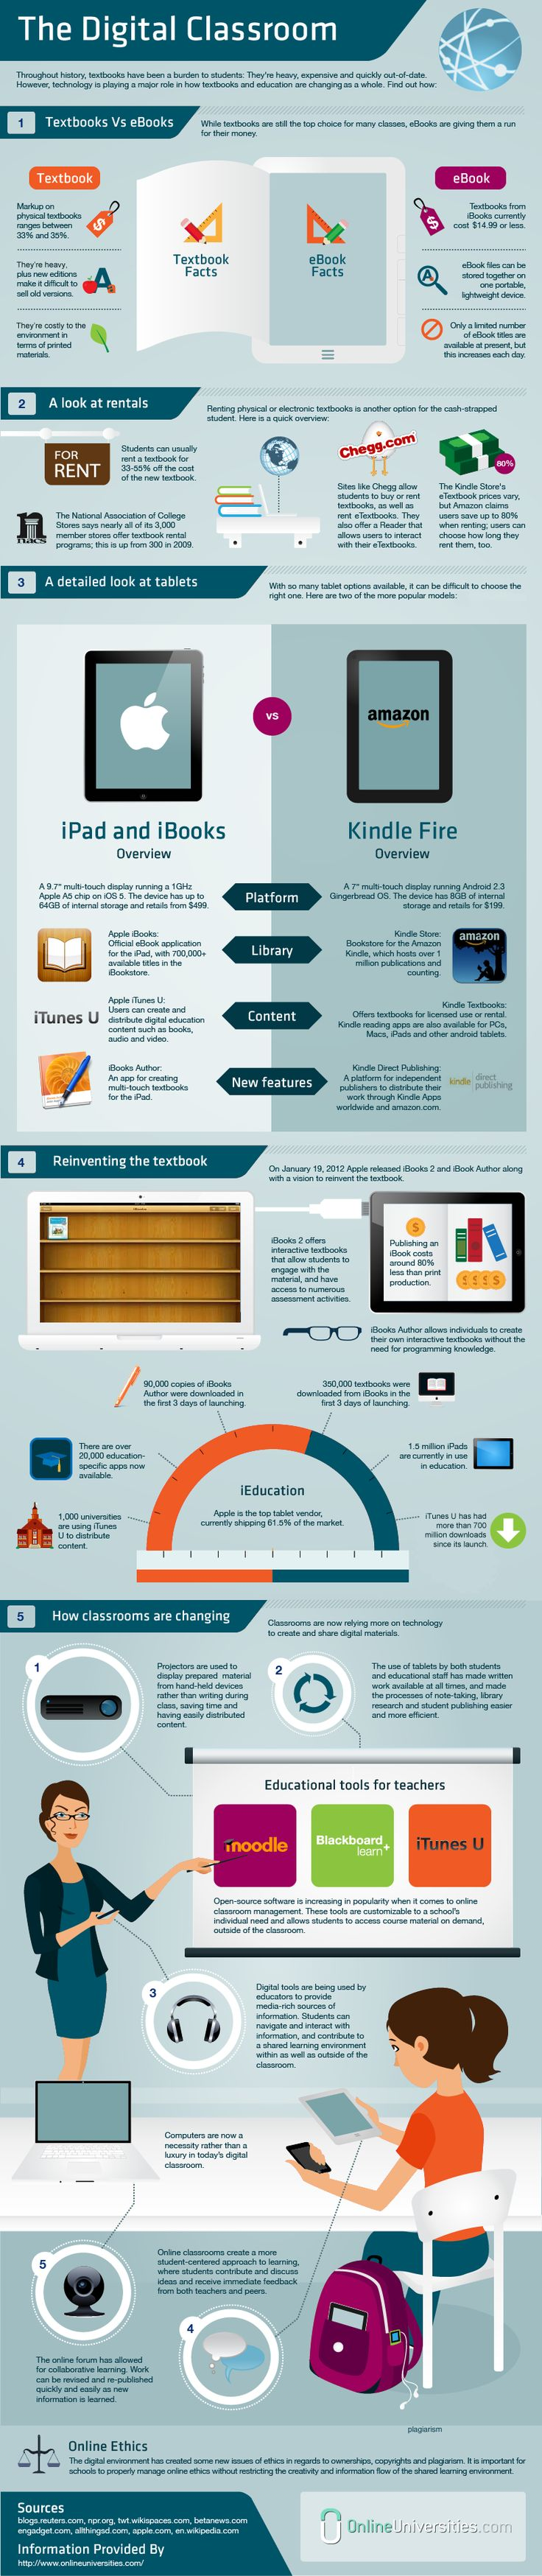 eBooks in the Digital ClassroomClassroom Infographic, Schools, Teaching, Social Media, Education Technology, Higher Education, Learning, Digital Classroom, Retrato-Port Digital